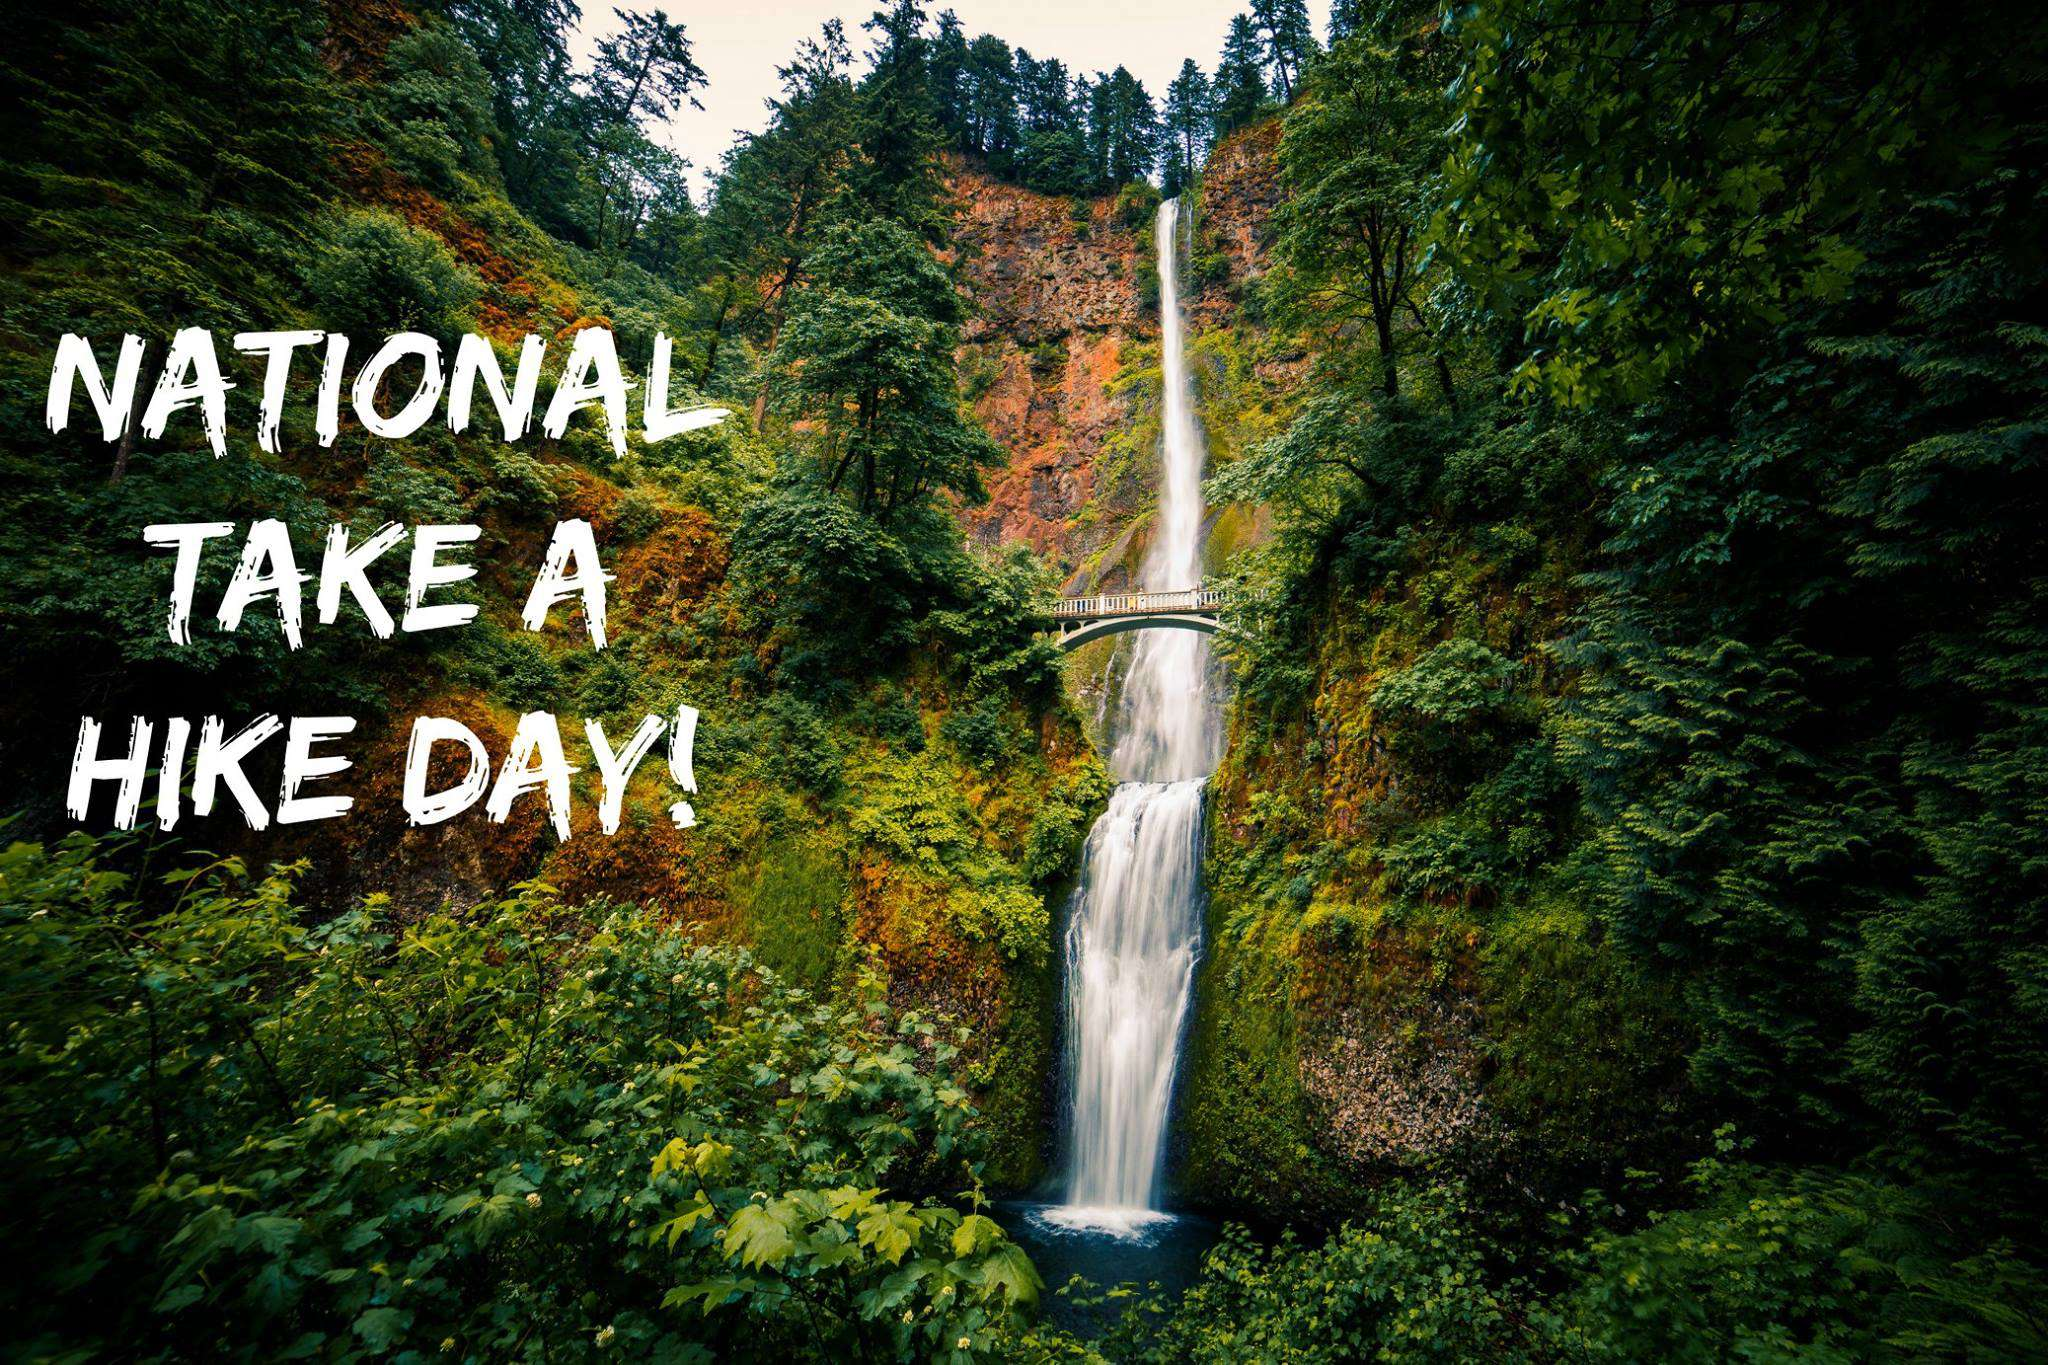 National Take a Hike Day Wishes pics free download